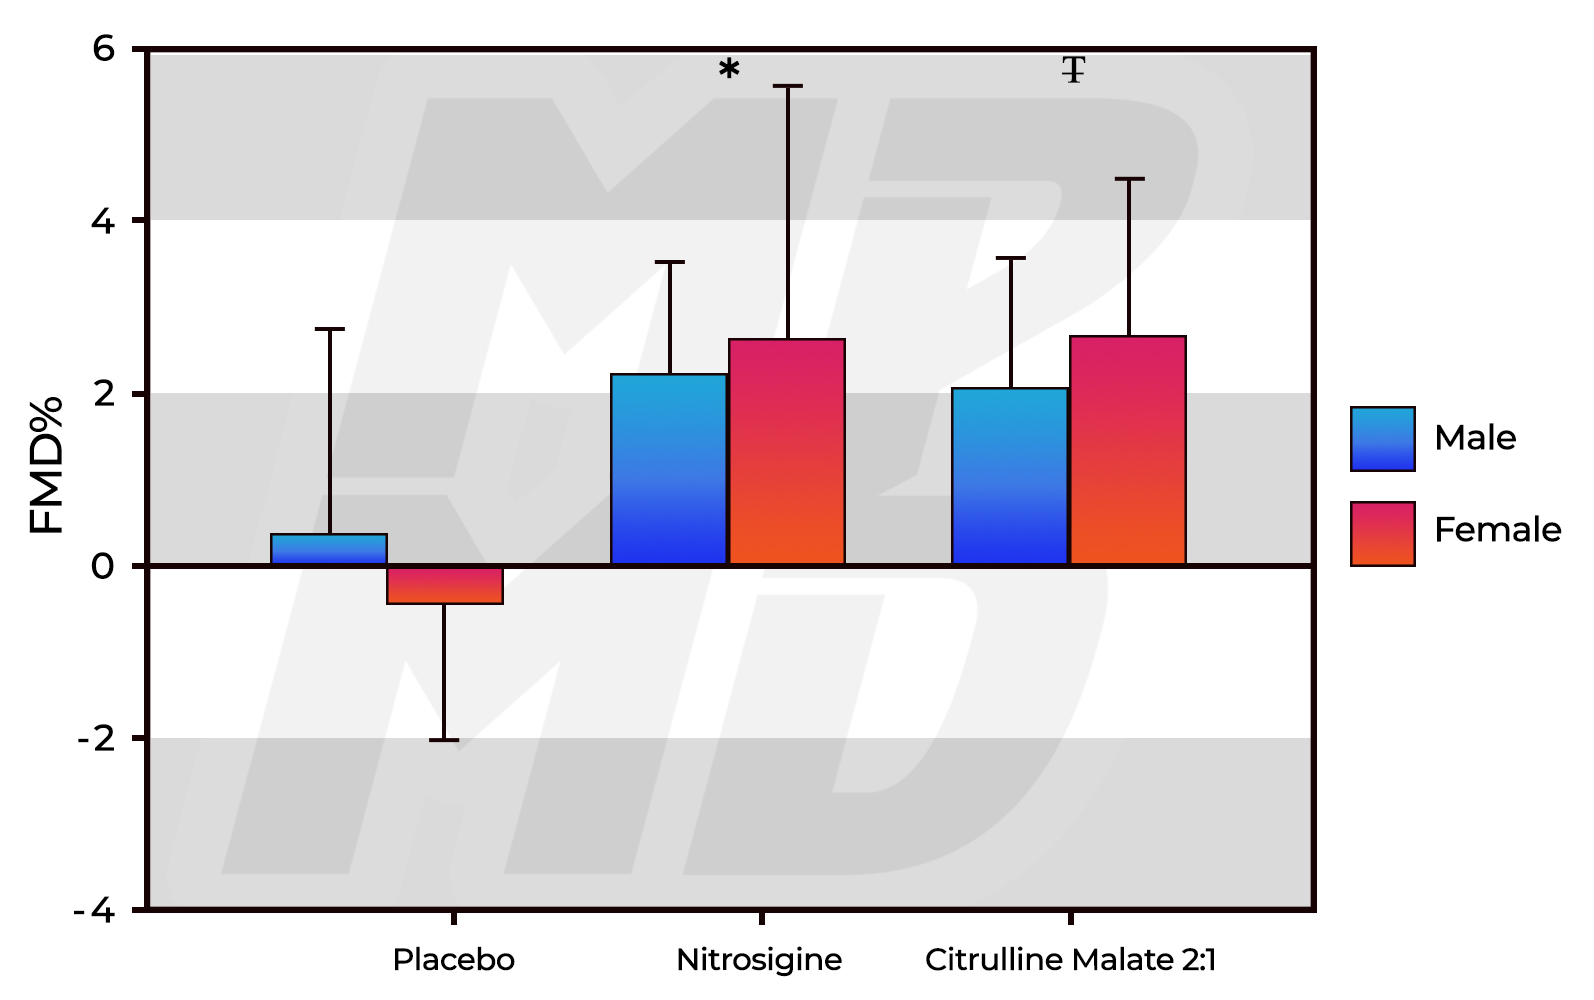 FMD percentages for Citrulline Malate Vs. Nitrosigine Vs. Dextrose Placebo In Healthy Young Adults